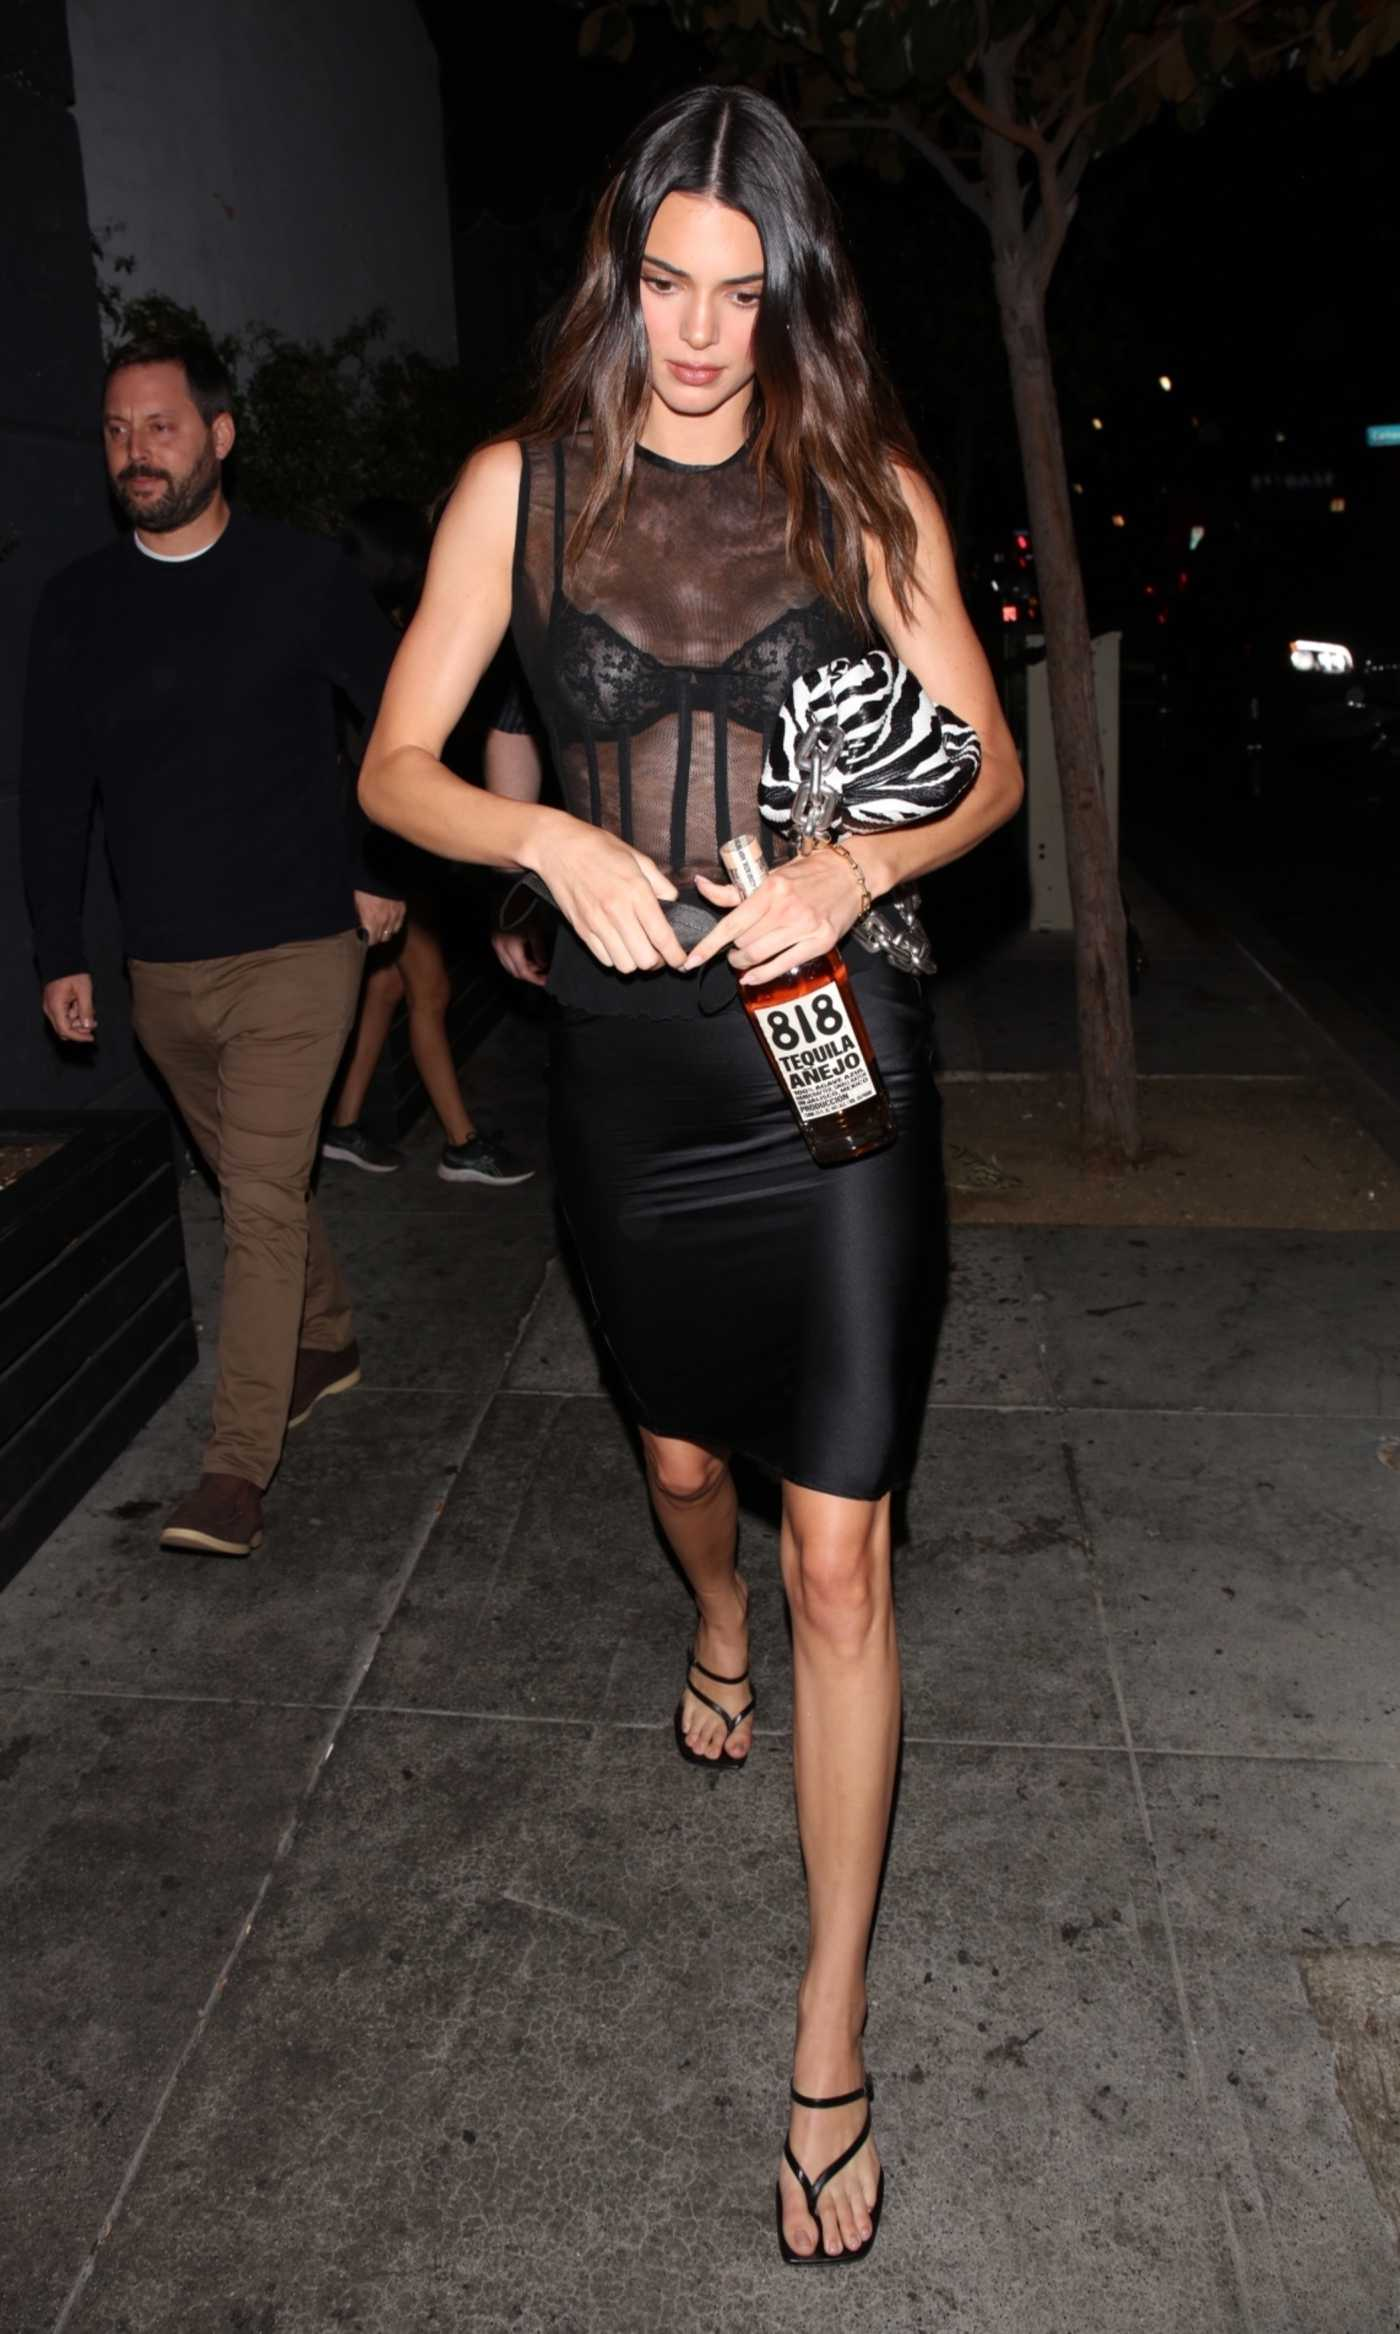 Kendall Jenner in a Black Outfit Exits a Dinner Meeting in Hollywood 09/01/2021